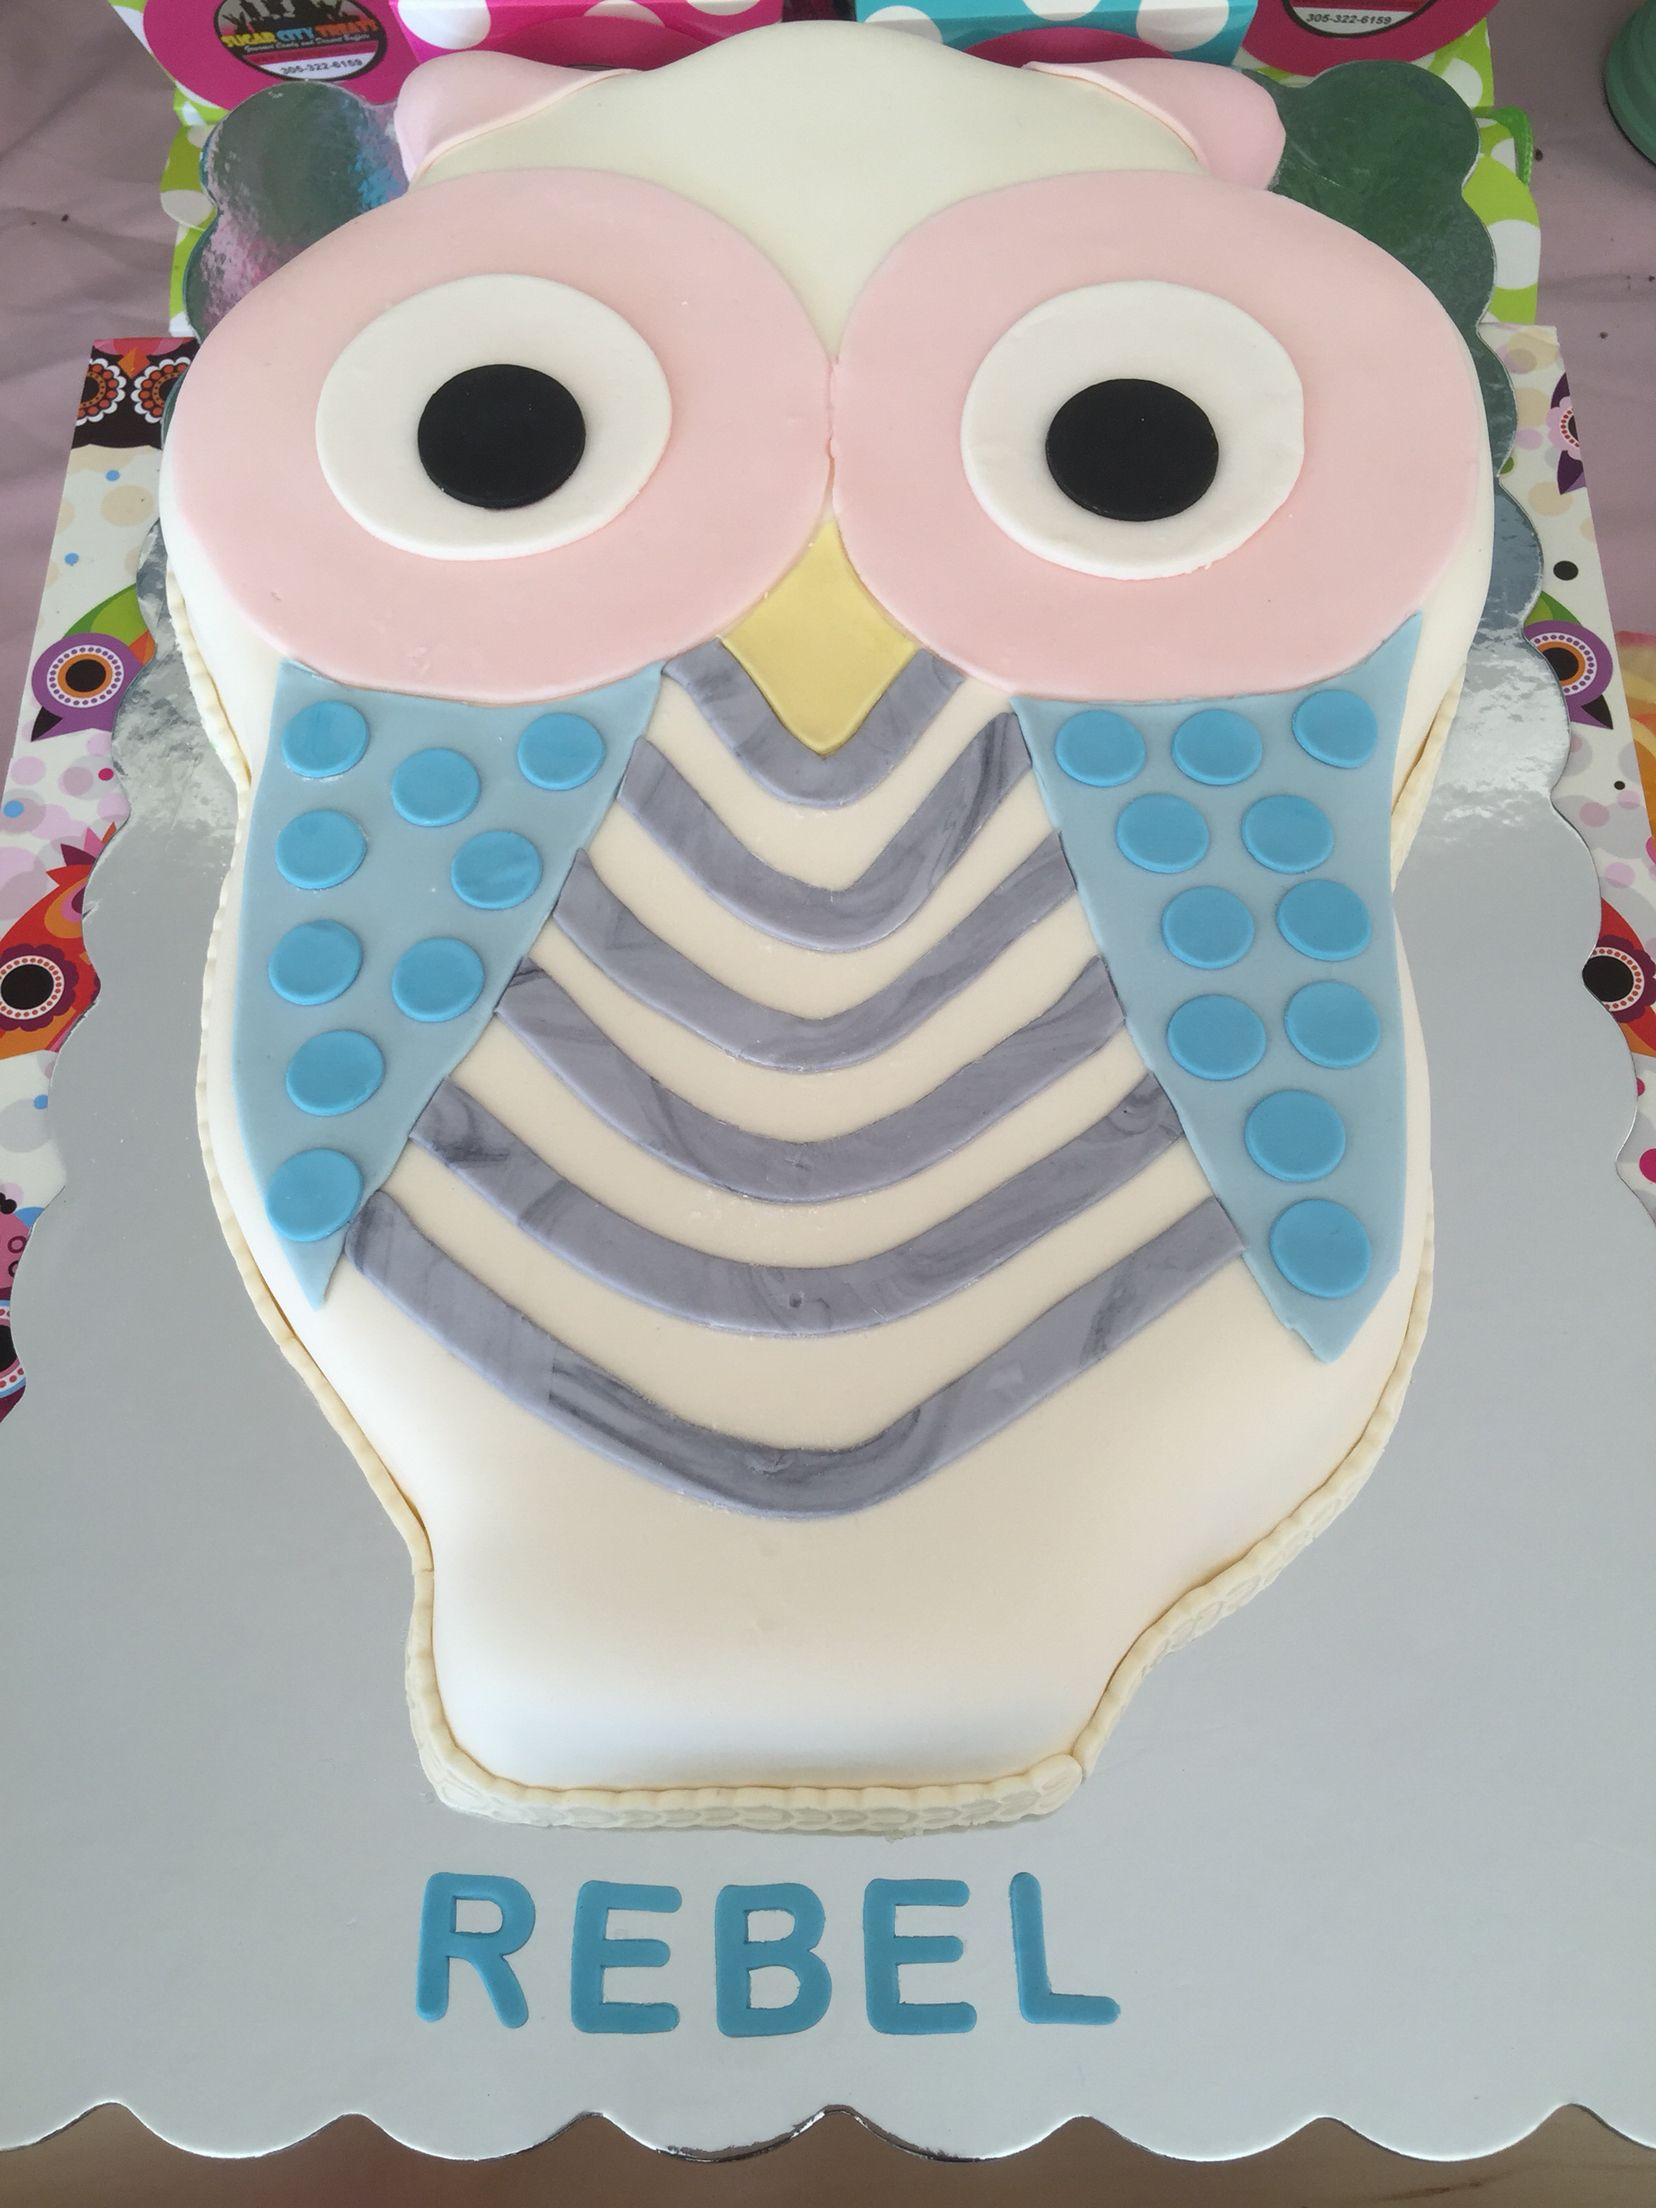 Owl Themed First Birthday Party. Teal, Pink, and Yellow Candy Buffet. Owl shaped cake and custom cupcake toppers.